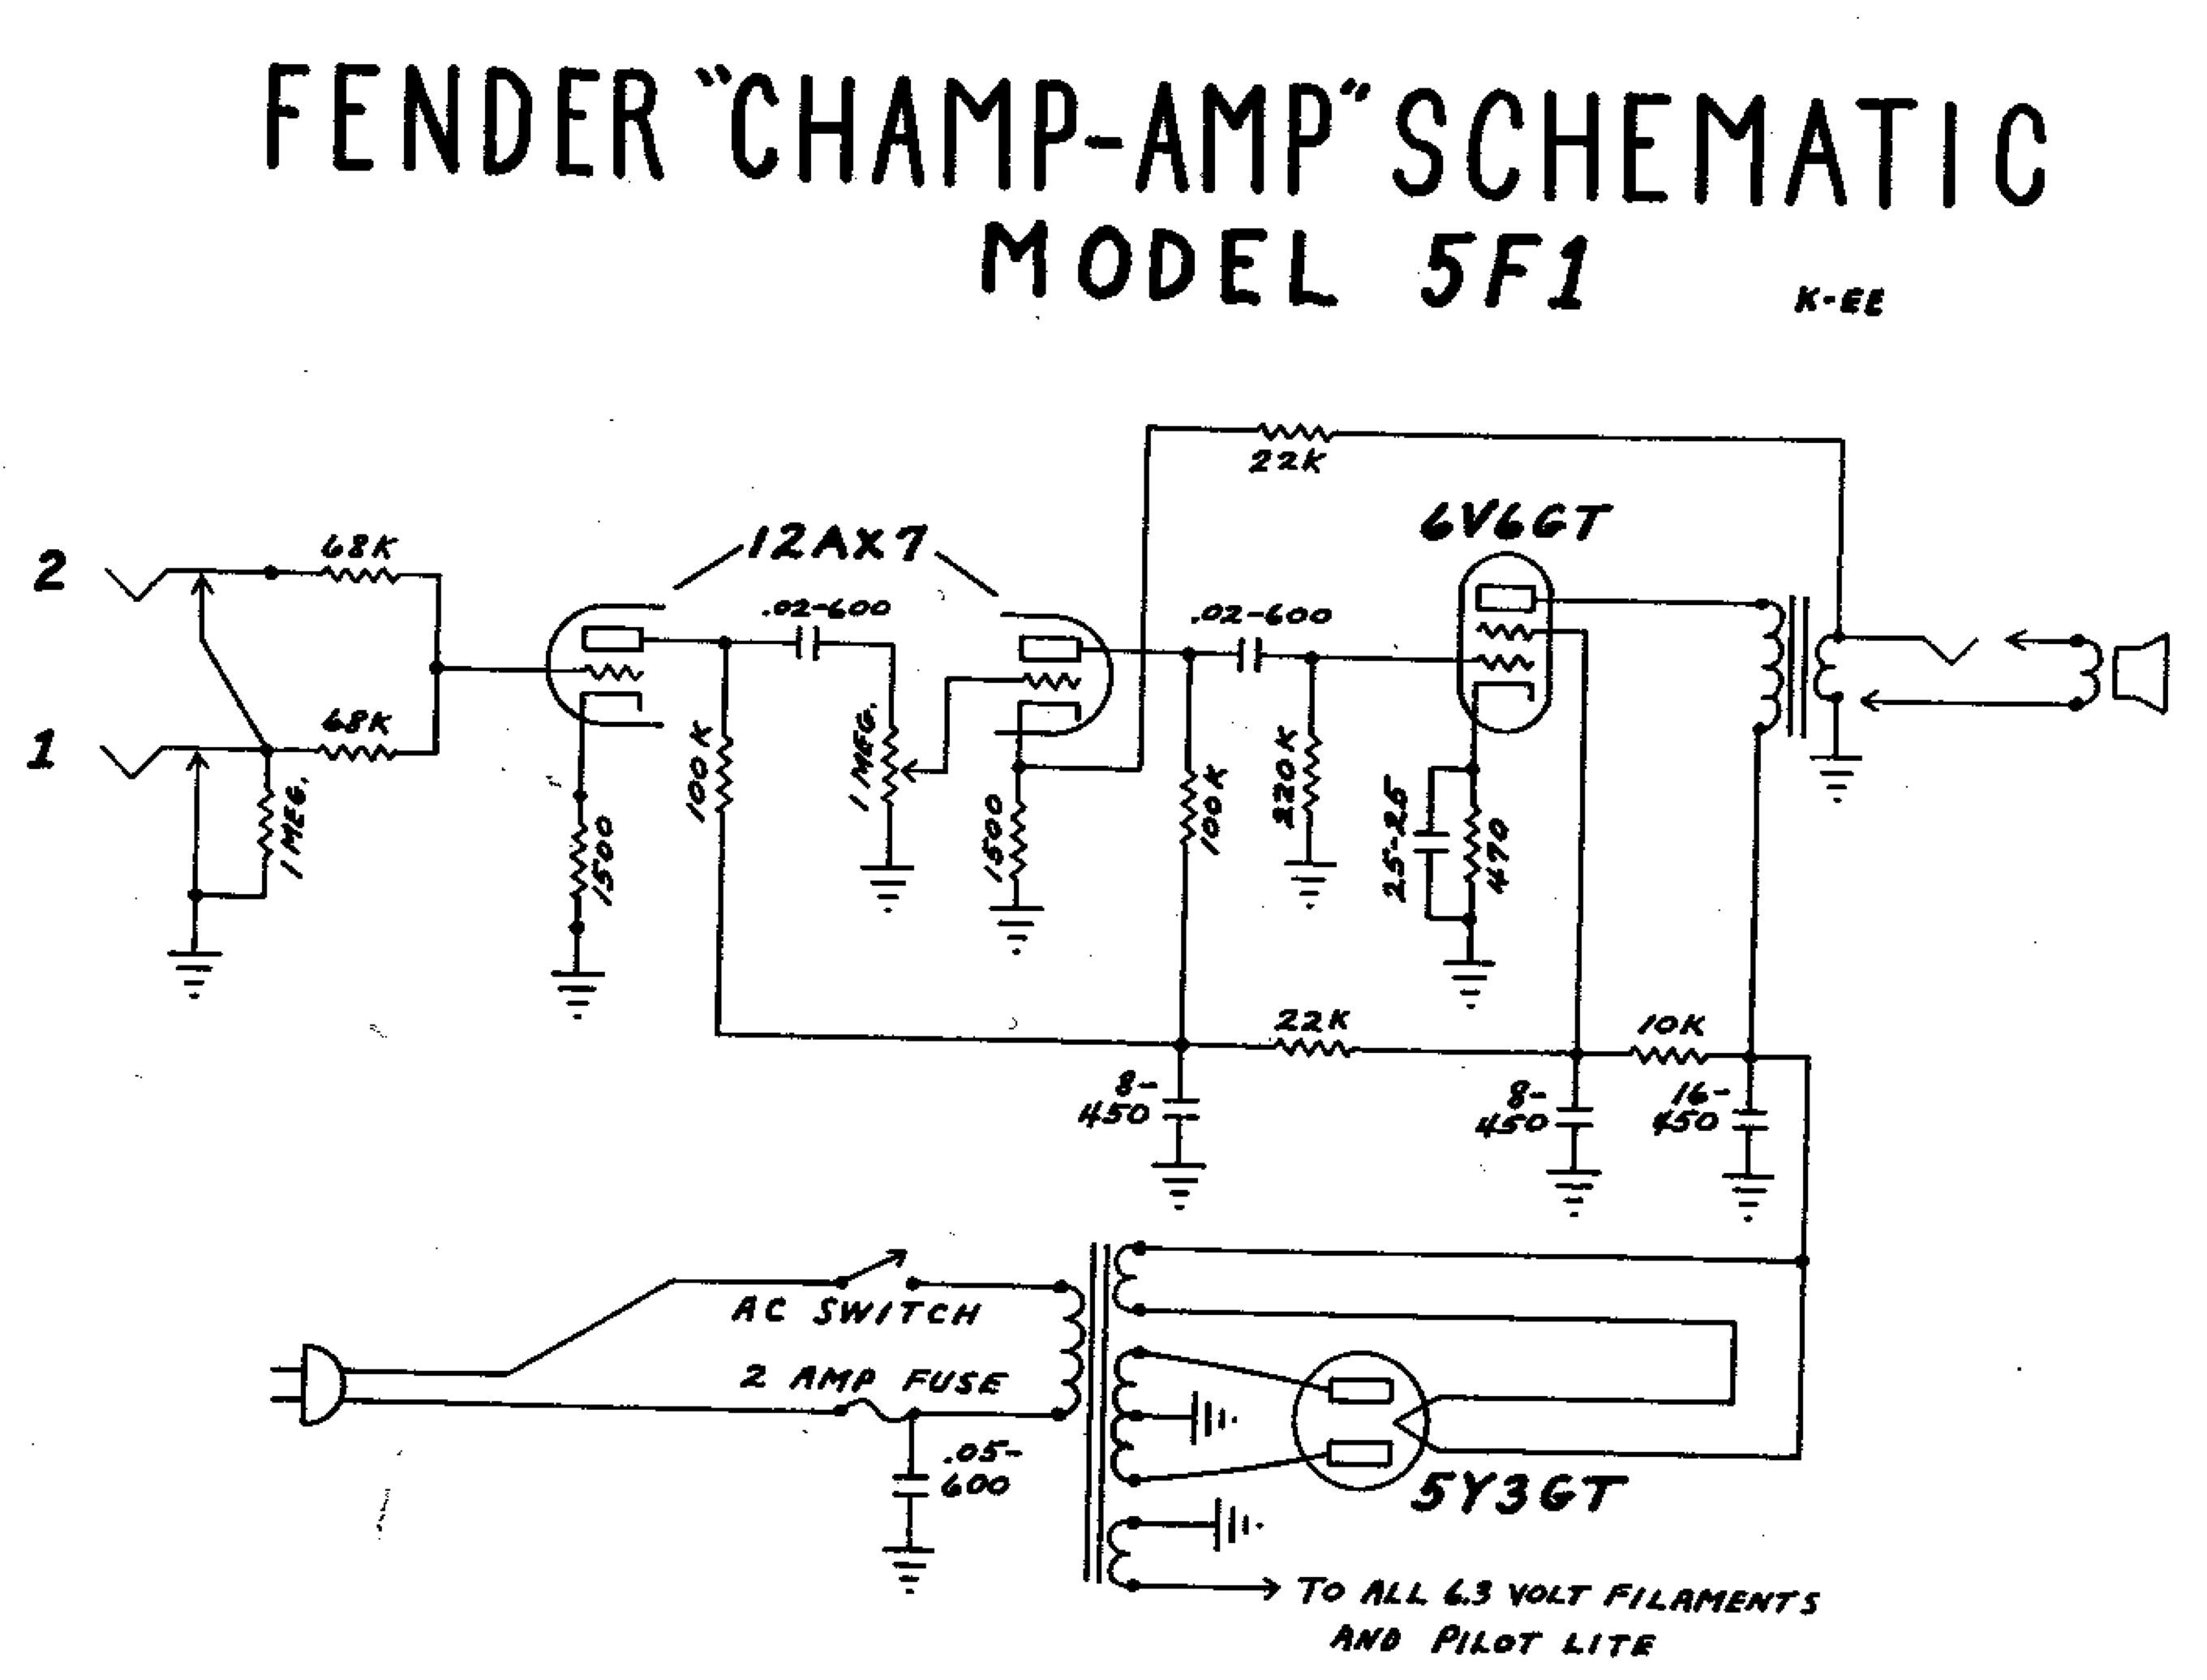 Pin By Donald Hayward On Schematics Pinterest Amp Guitar Circuit Diagram Tube Amplifier Diy Electronics Projects Electronic Valve